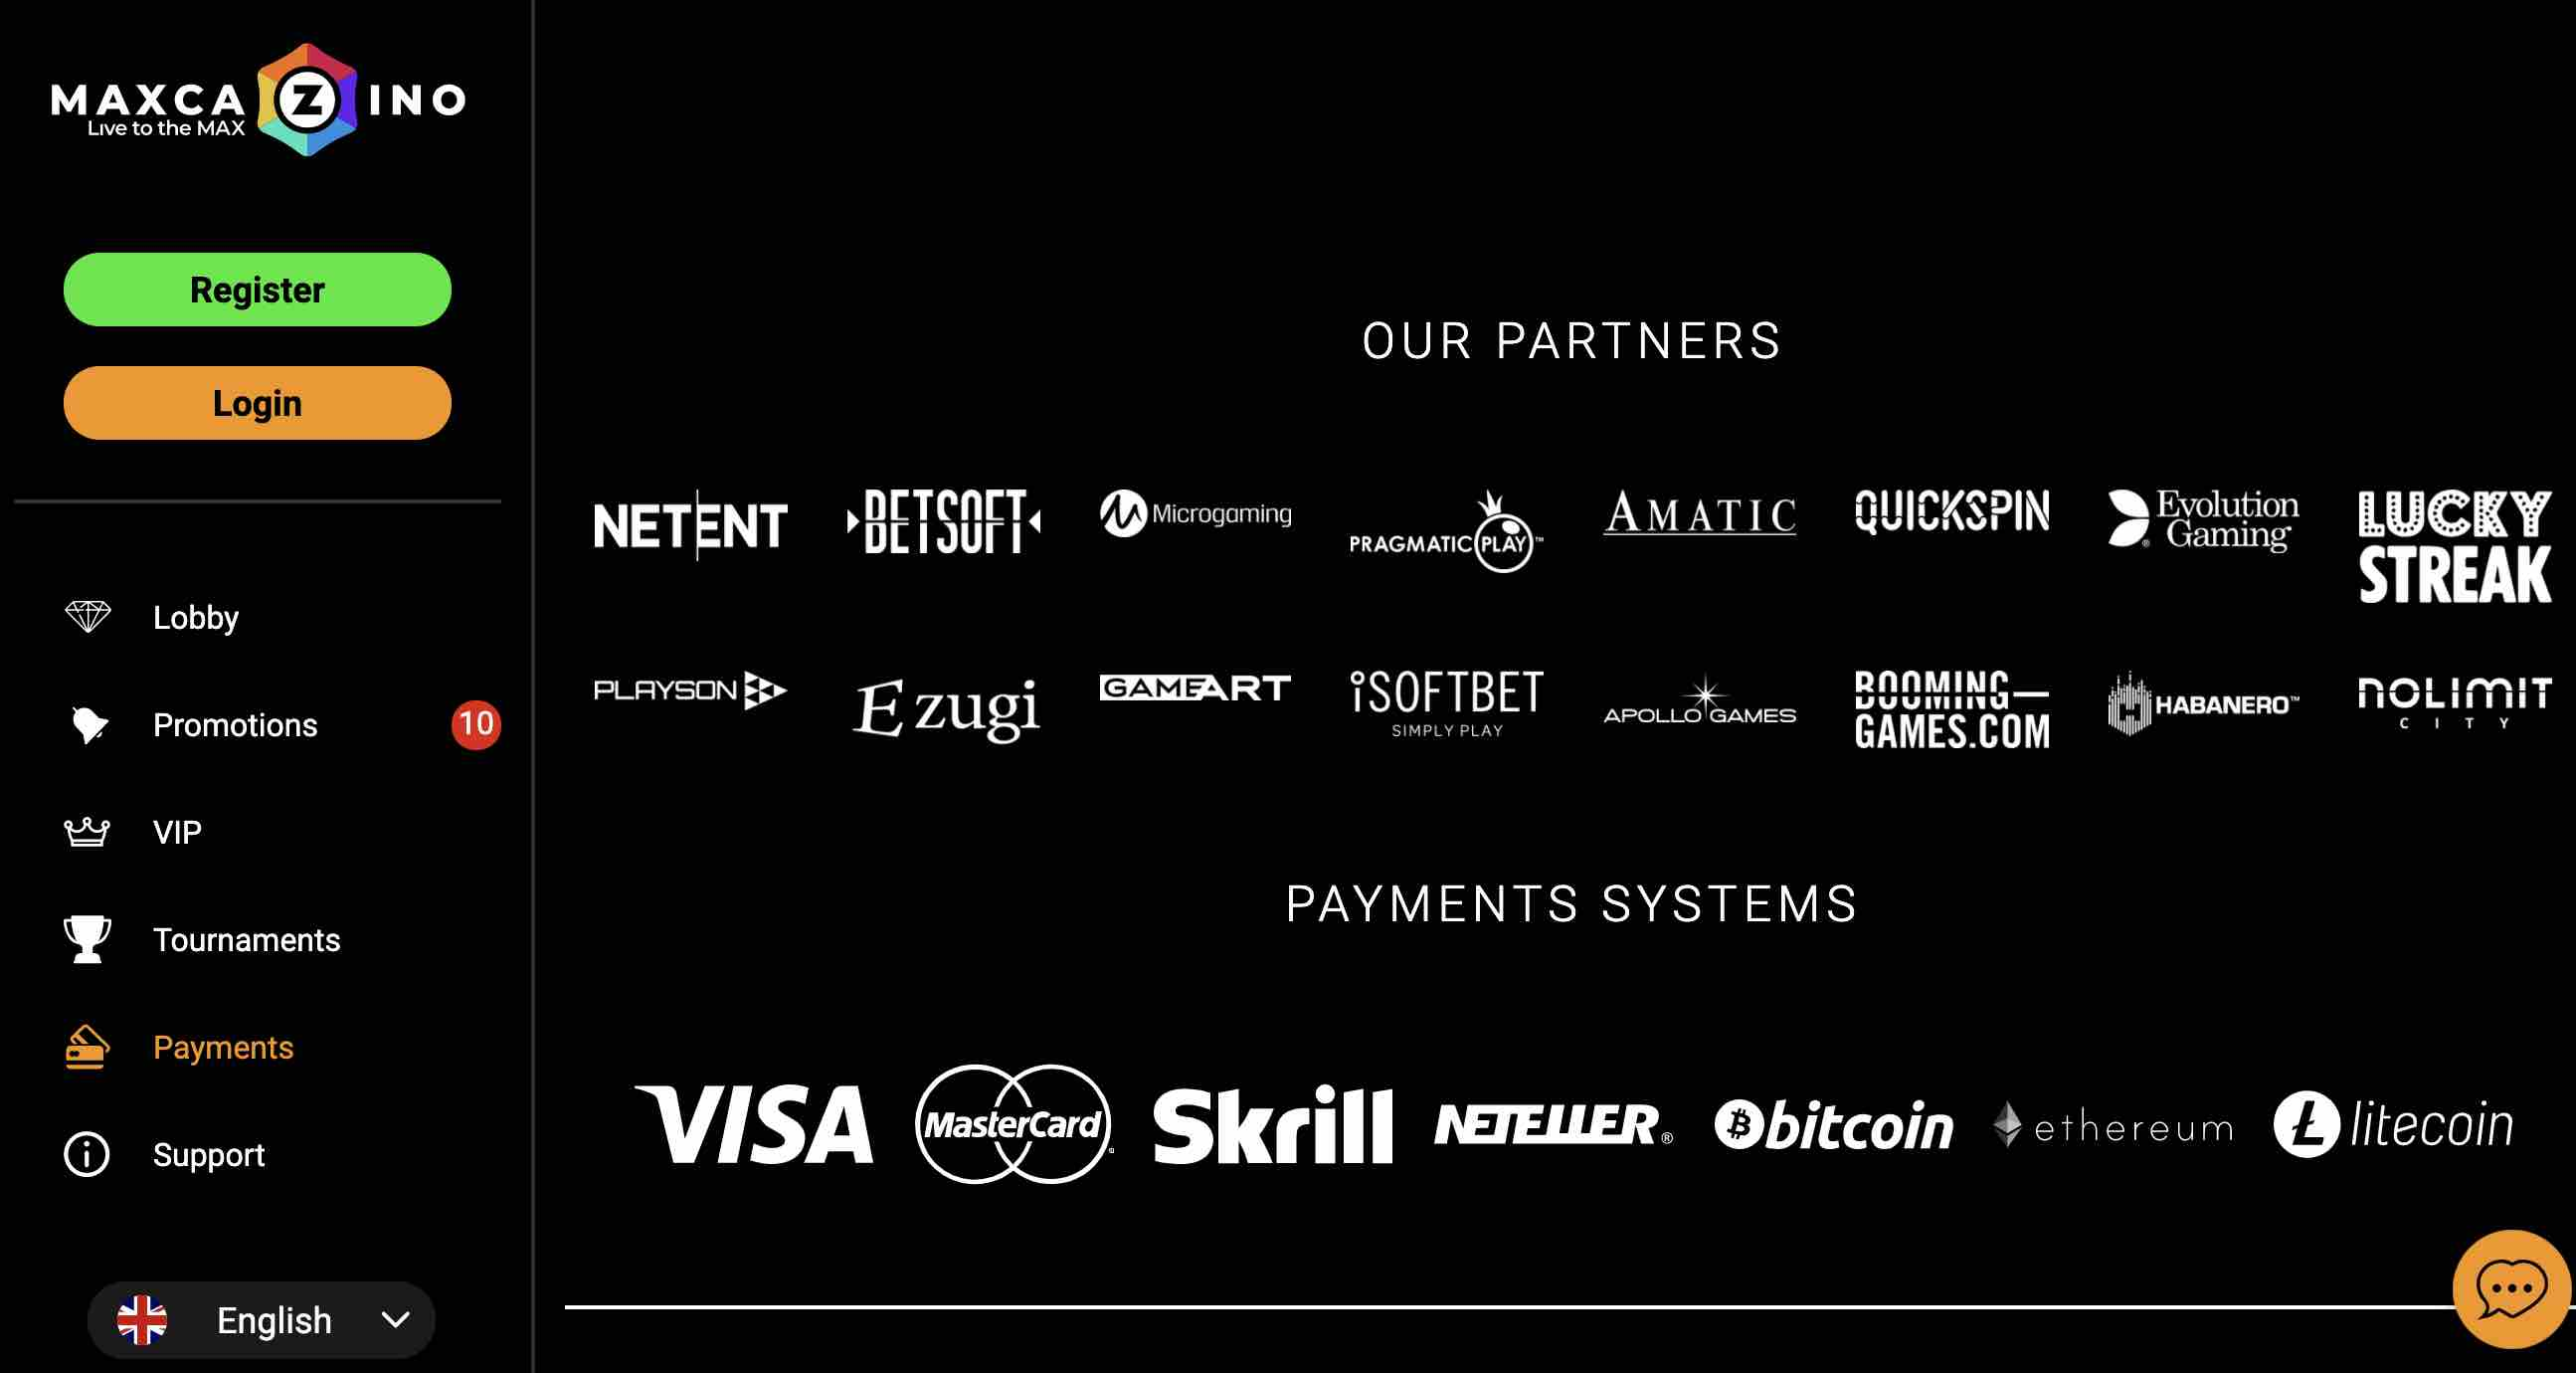 MaxCazino Partners for Payments and Games